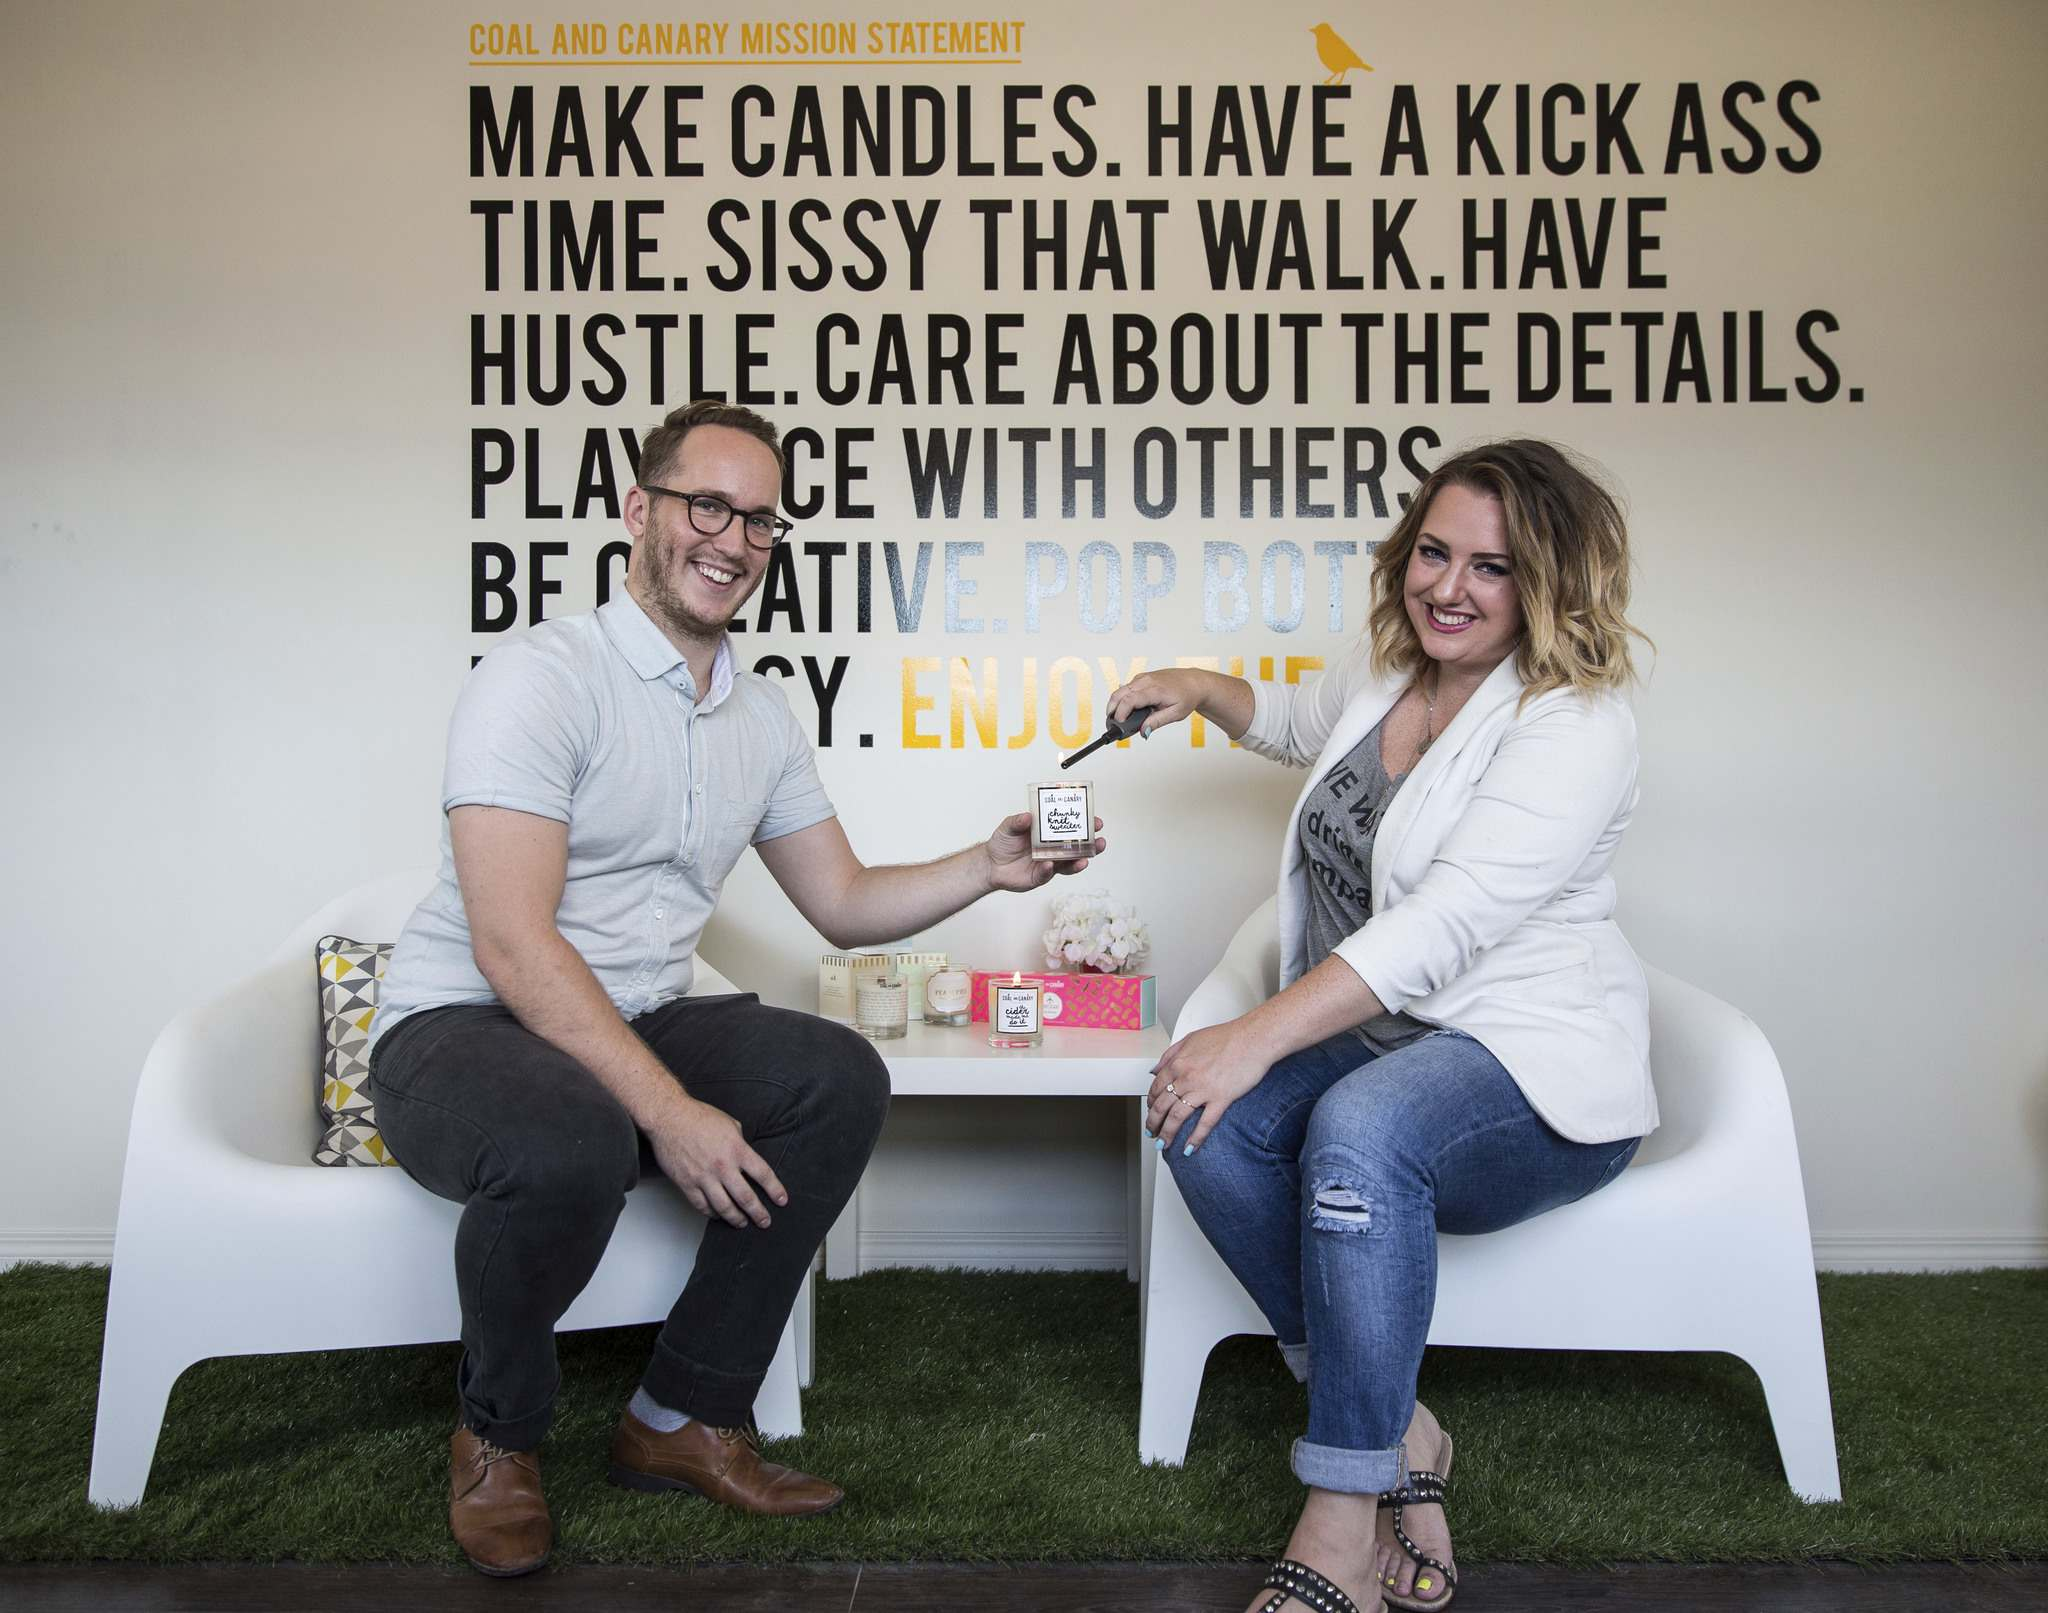 Tom Jansen and Amanda Buhse are co-founders of the now-ubiquitous Coal & Canary Candle Co., a local business who has leveraged Instagram in a big way. They just opened a new office/production house on Sanford Street to meet demand.